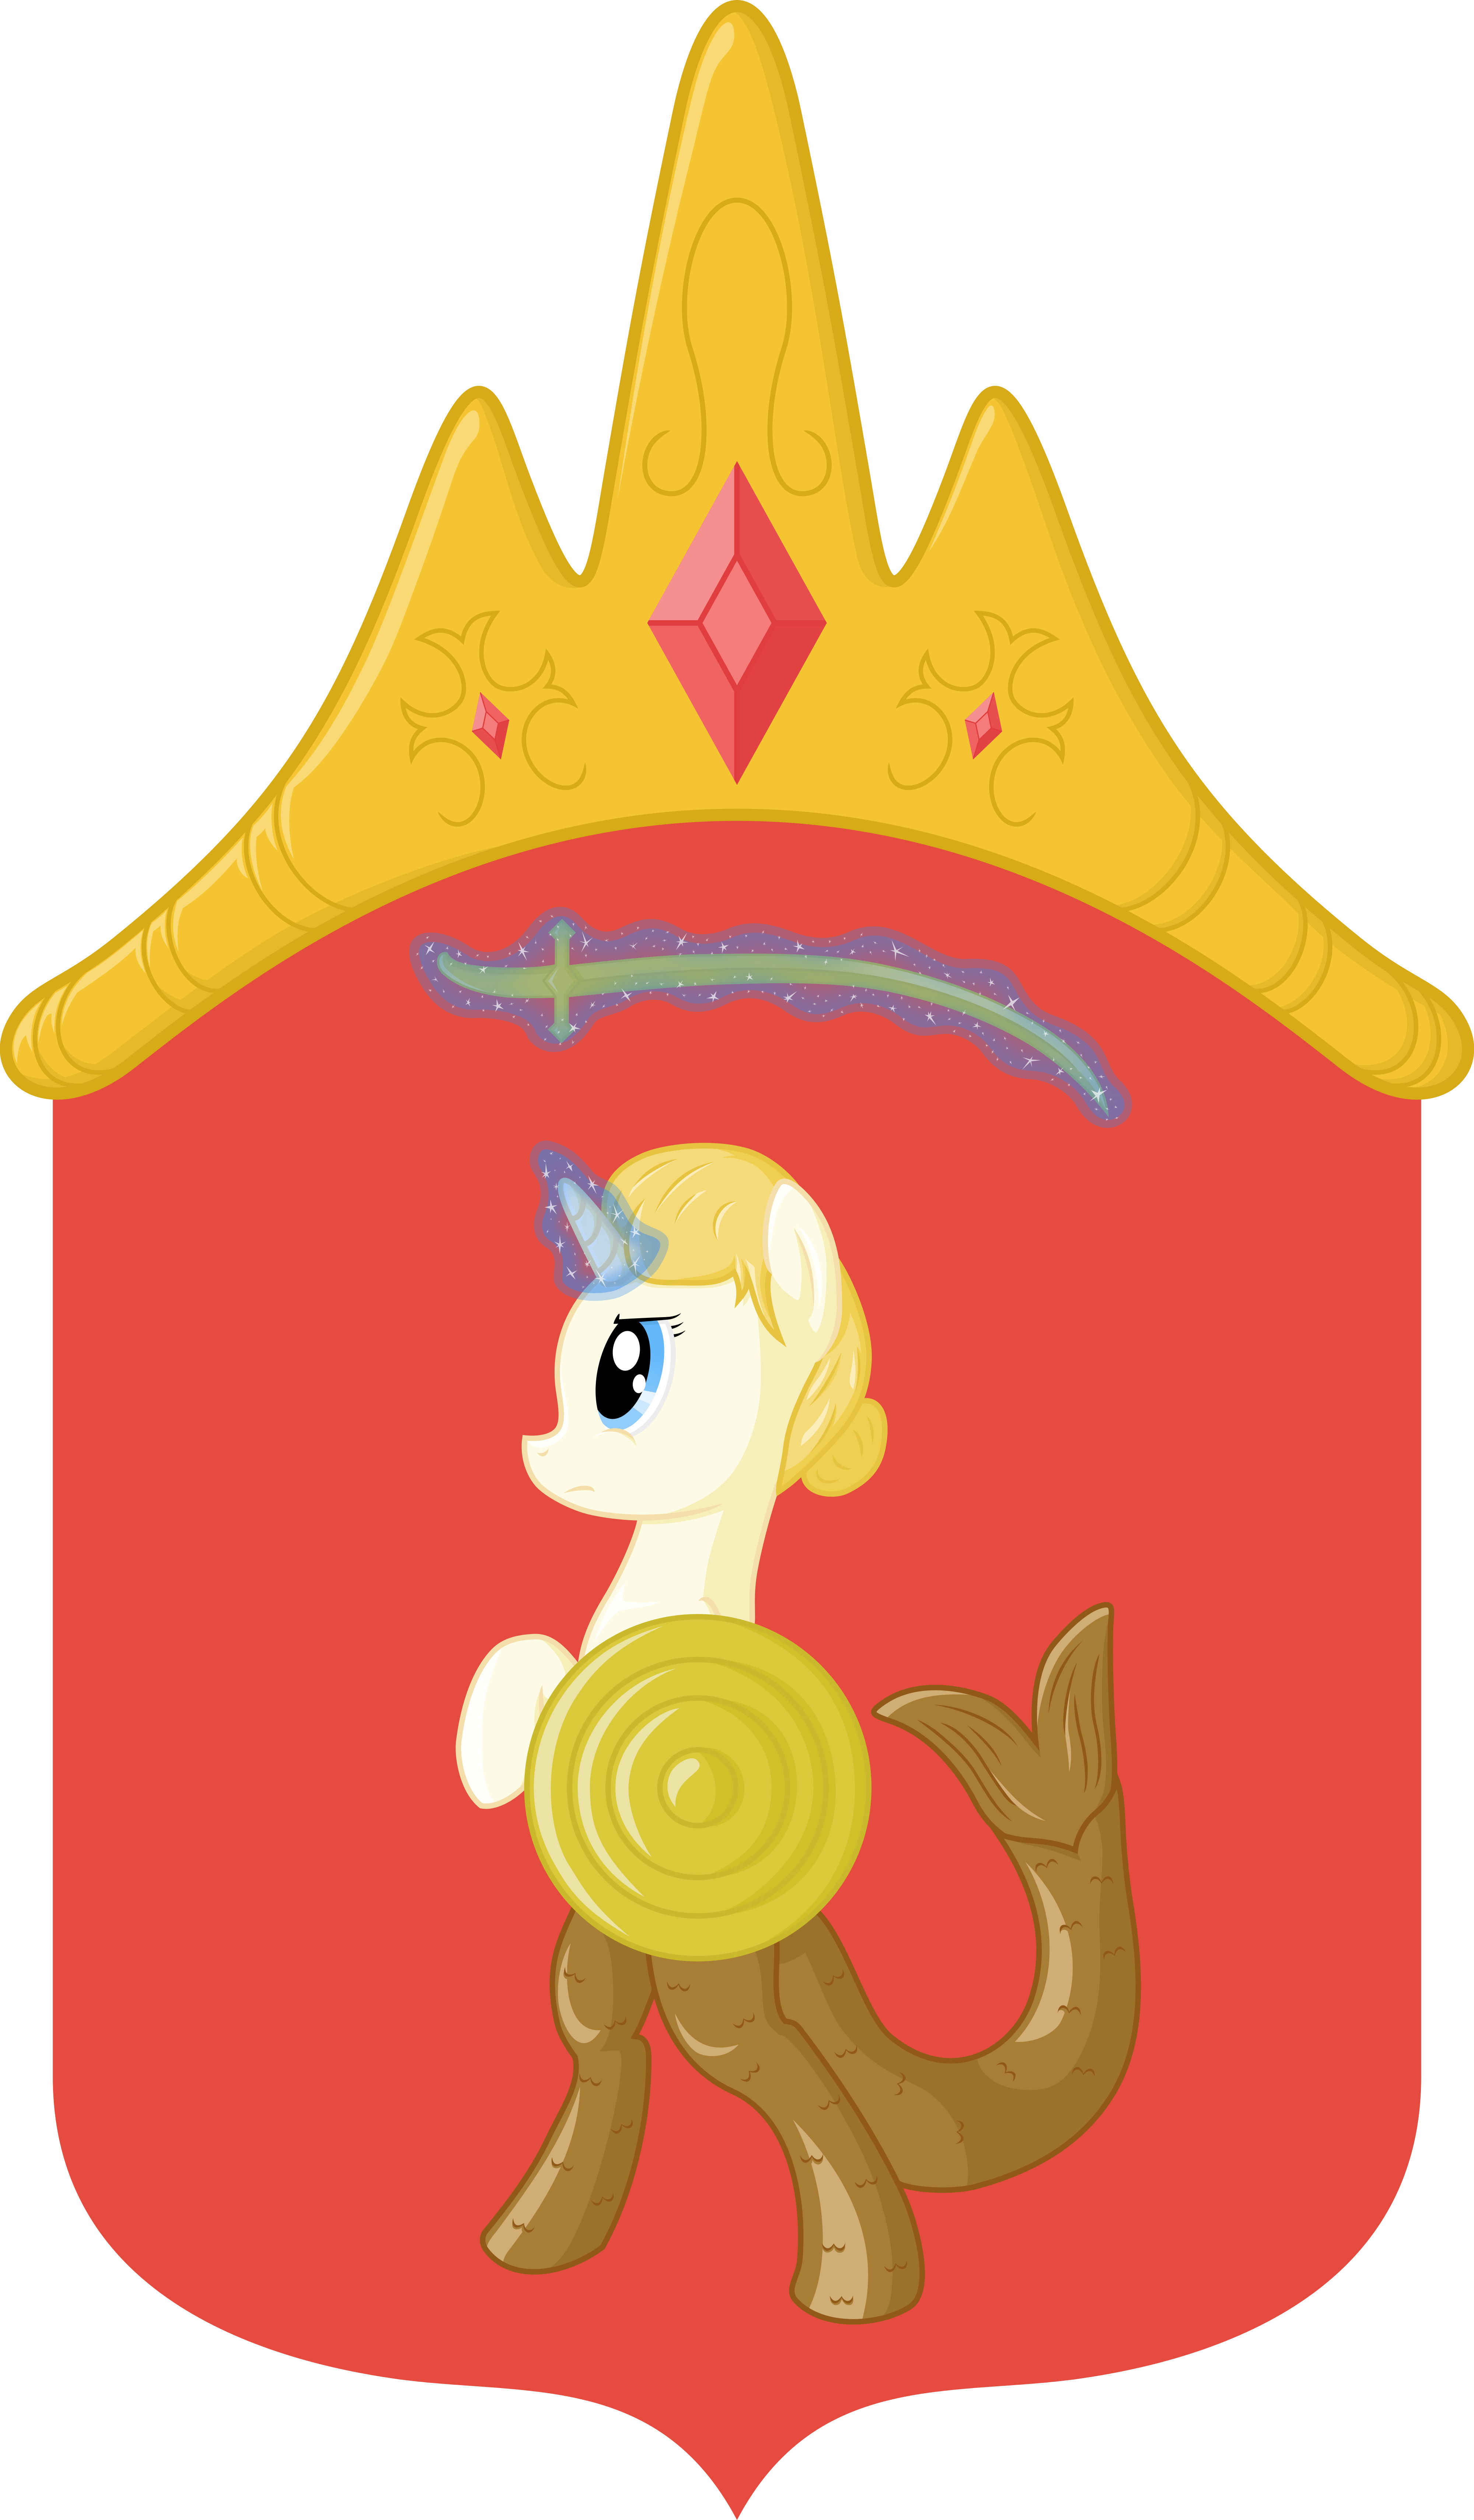 coat_of_arms_of_warsaw_ponyfied_by_esc54